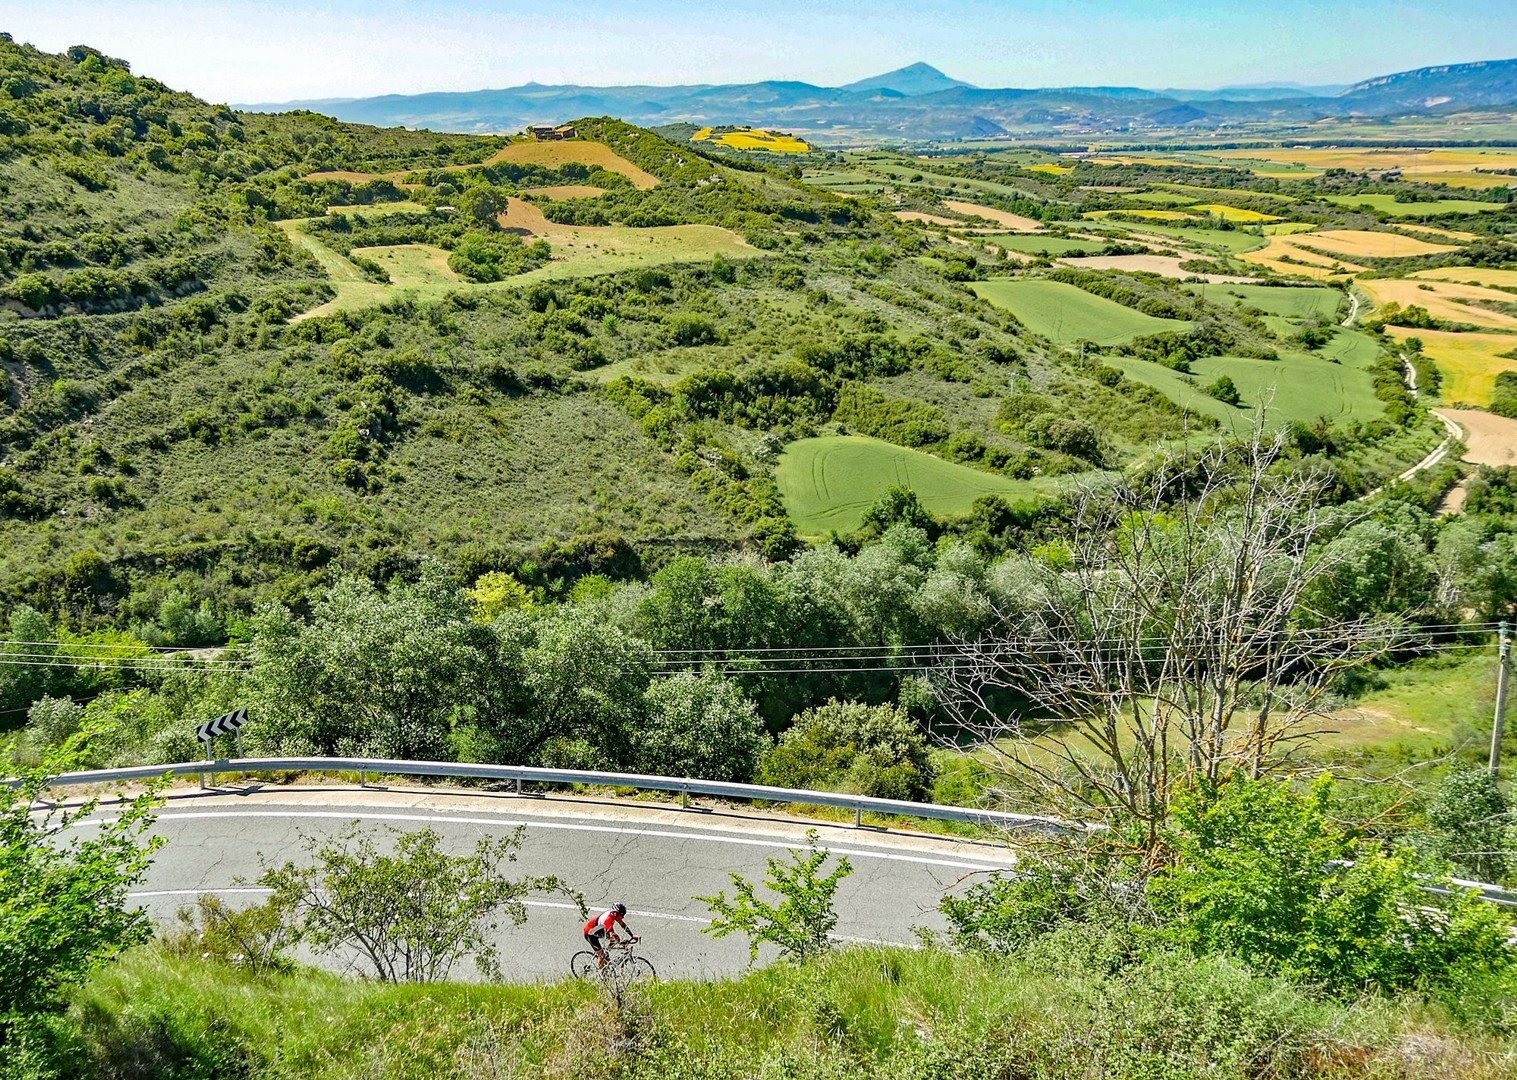 guided-road-cycling-northern-spain-saddle-skedaddle-holiday-bilbao-to-barcelona.jpg - Northern Spain - Bilbao to Barcelona - Guided Road Cycling Holiday - Road Cycling